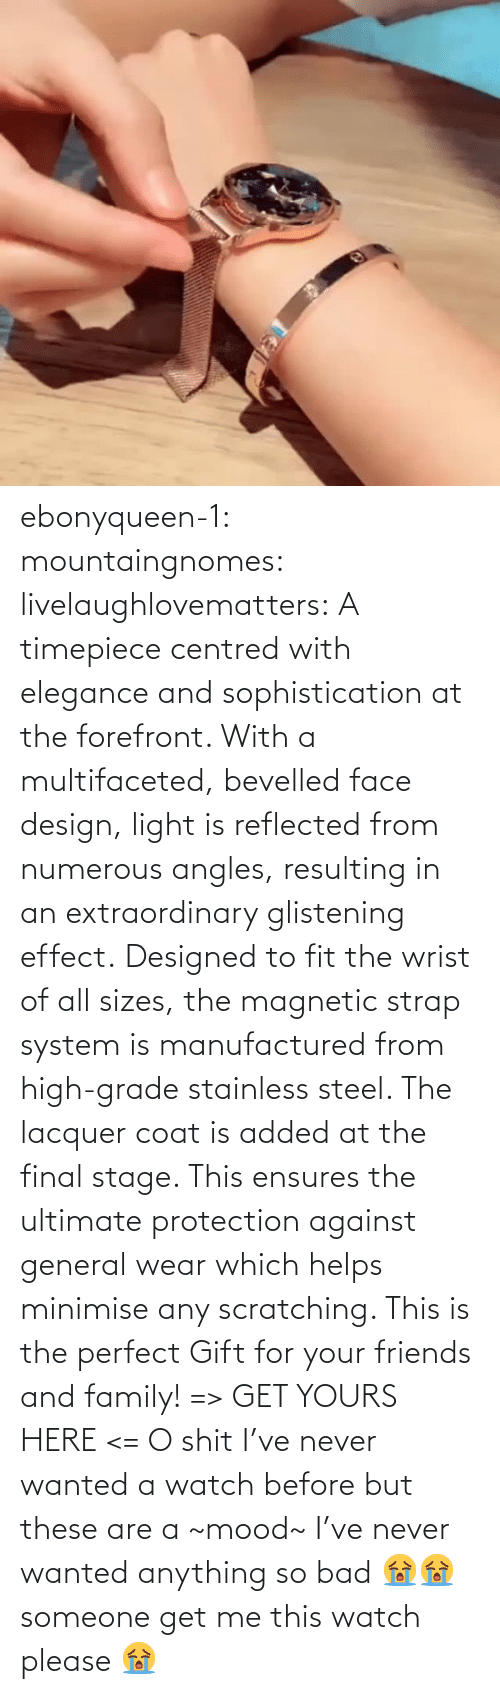 effect: ebonyqueen-1:  mountaingnomes:  livelaughlovematters:  A timepiece centred with elegance and sophistication at the forefront. With a multifaceted, bevelled face design, light is reflected from numerous angles, resulting in an extraordinary glistening effect. Designed to fit the wrist of all sizes, the magnetic strap system is manufactured from high-grade stainless steel. The lacquer coat is added at the final stage. This ensures the ultimate protection against general wear which helps minimise any scratching. This is the perfect Gift for your friends and family! => GET YOURS HERE <=  O shit I've never wanted a watch before but these are a ~mood~  I've never wanted anything so bad 😭😭 someone get me this watch please 😭